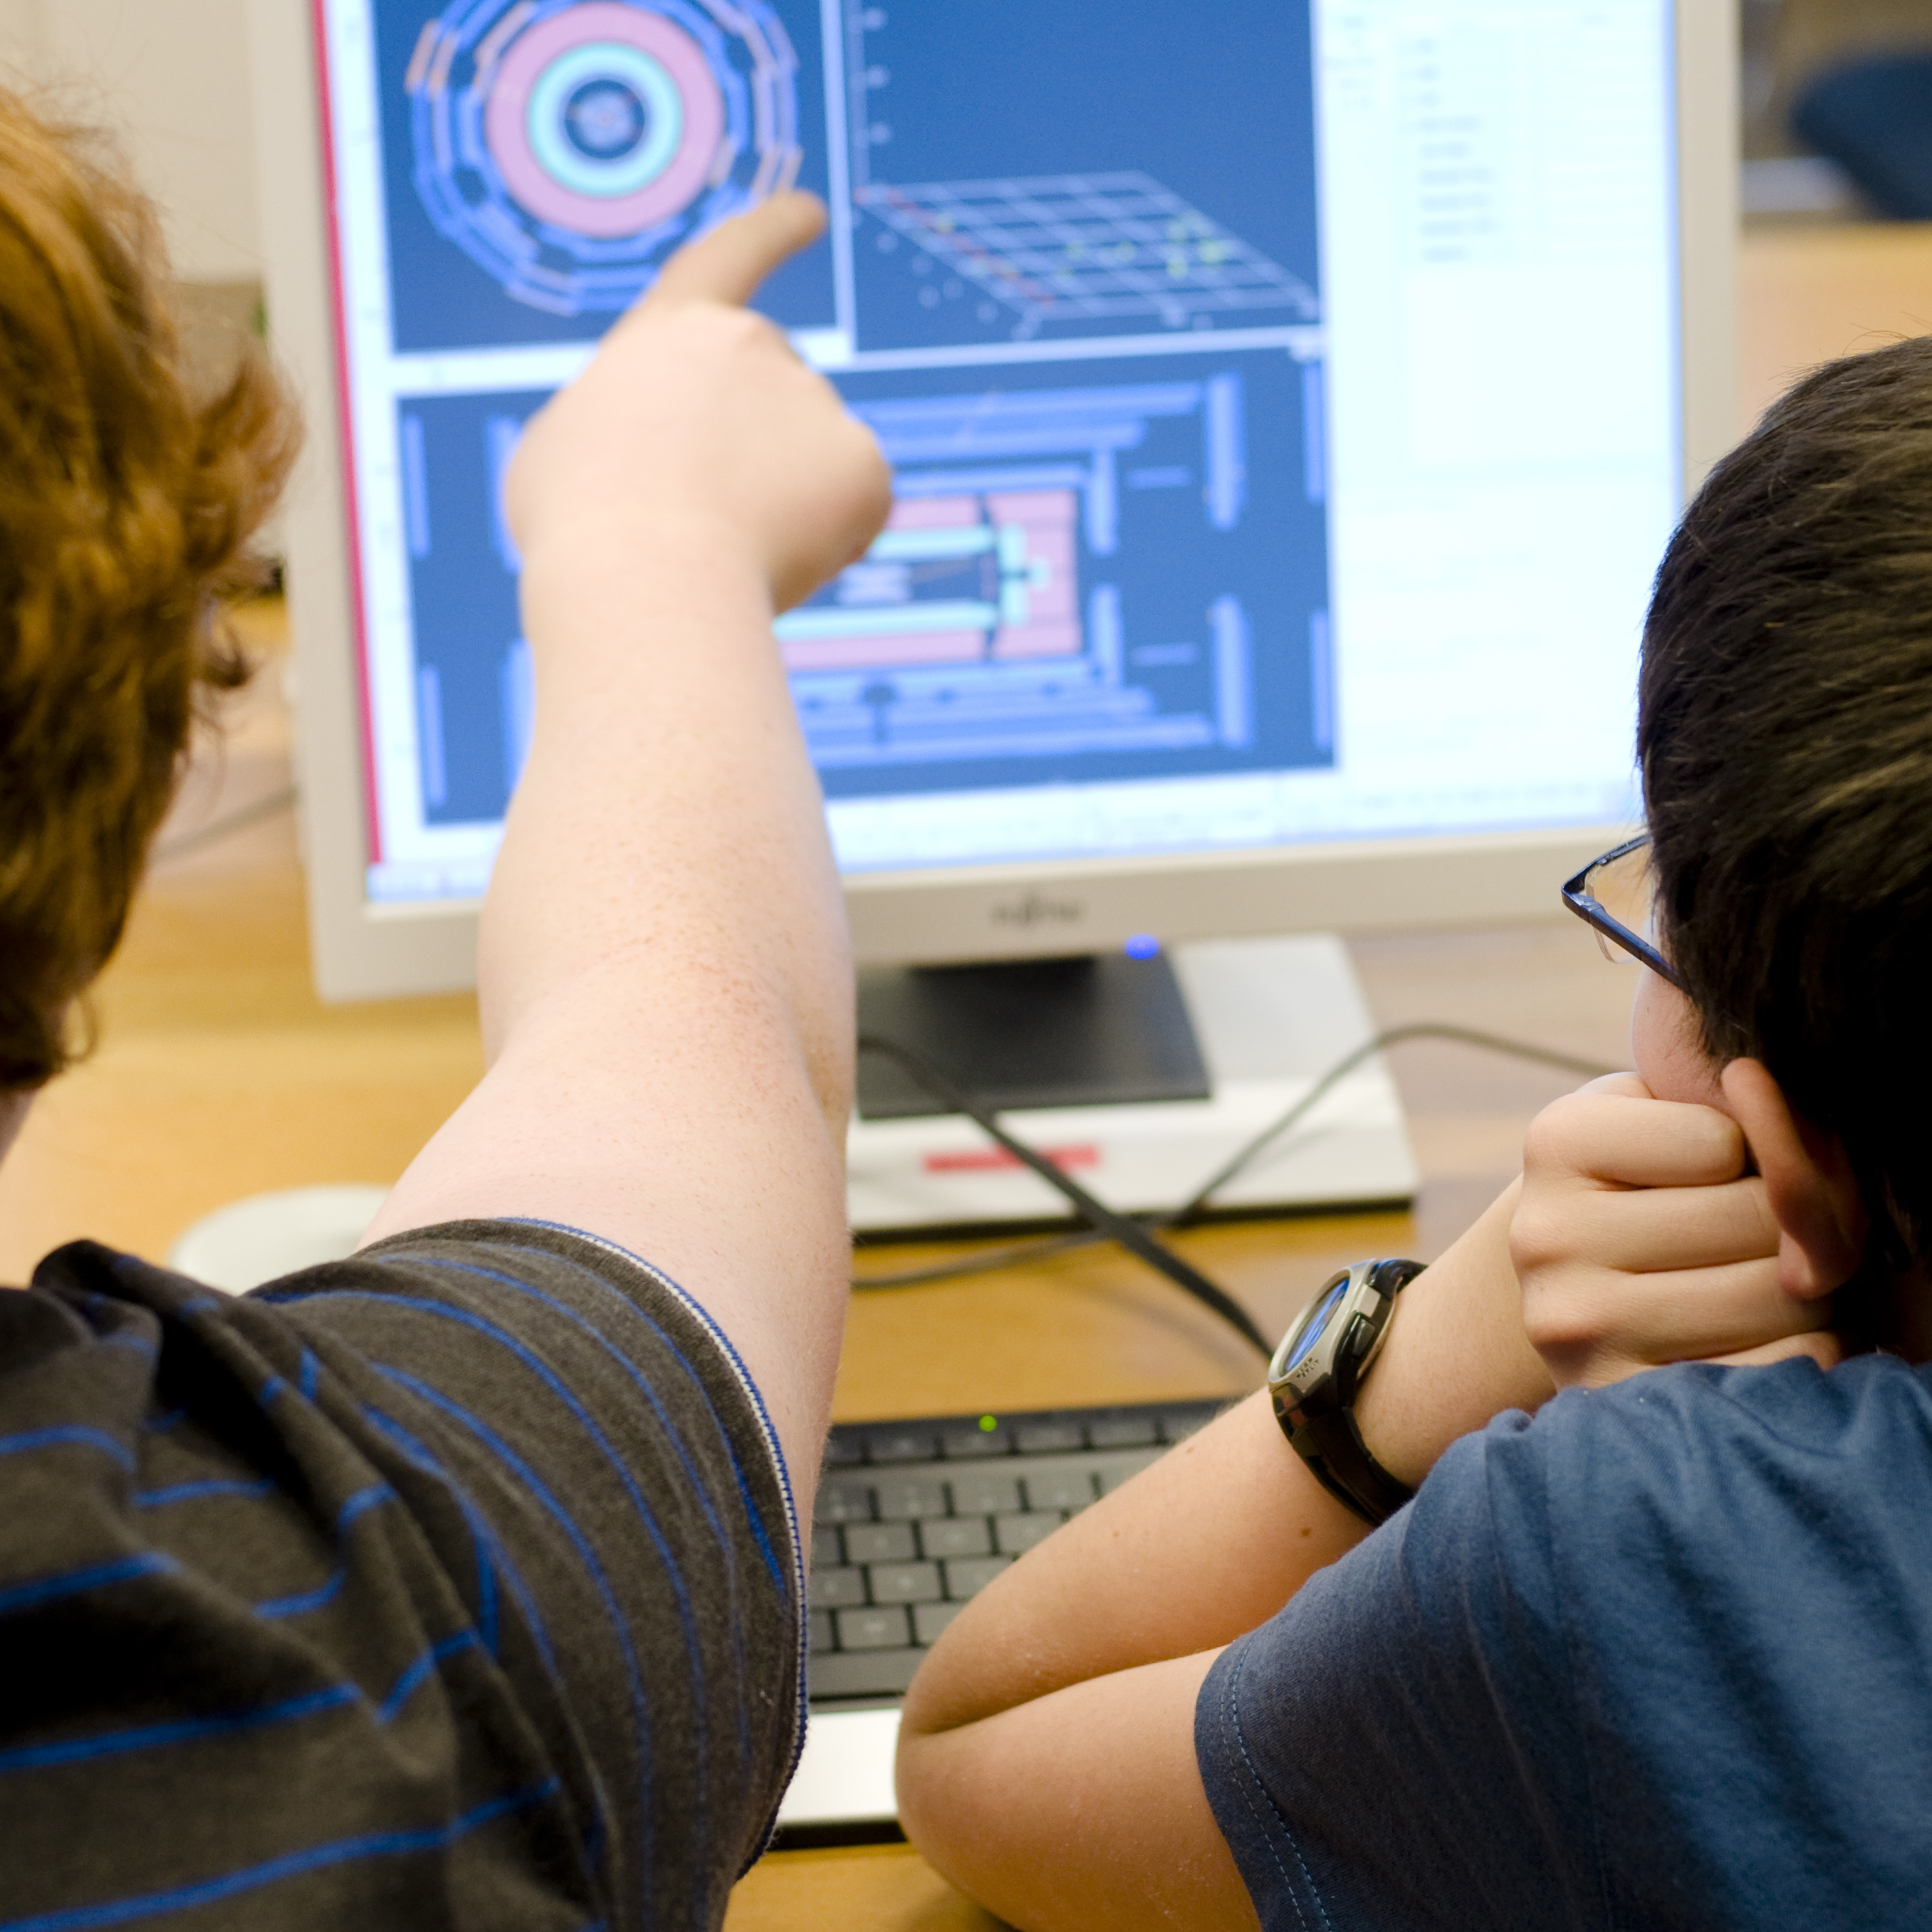 Two school students sitting in front of a monitor